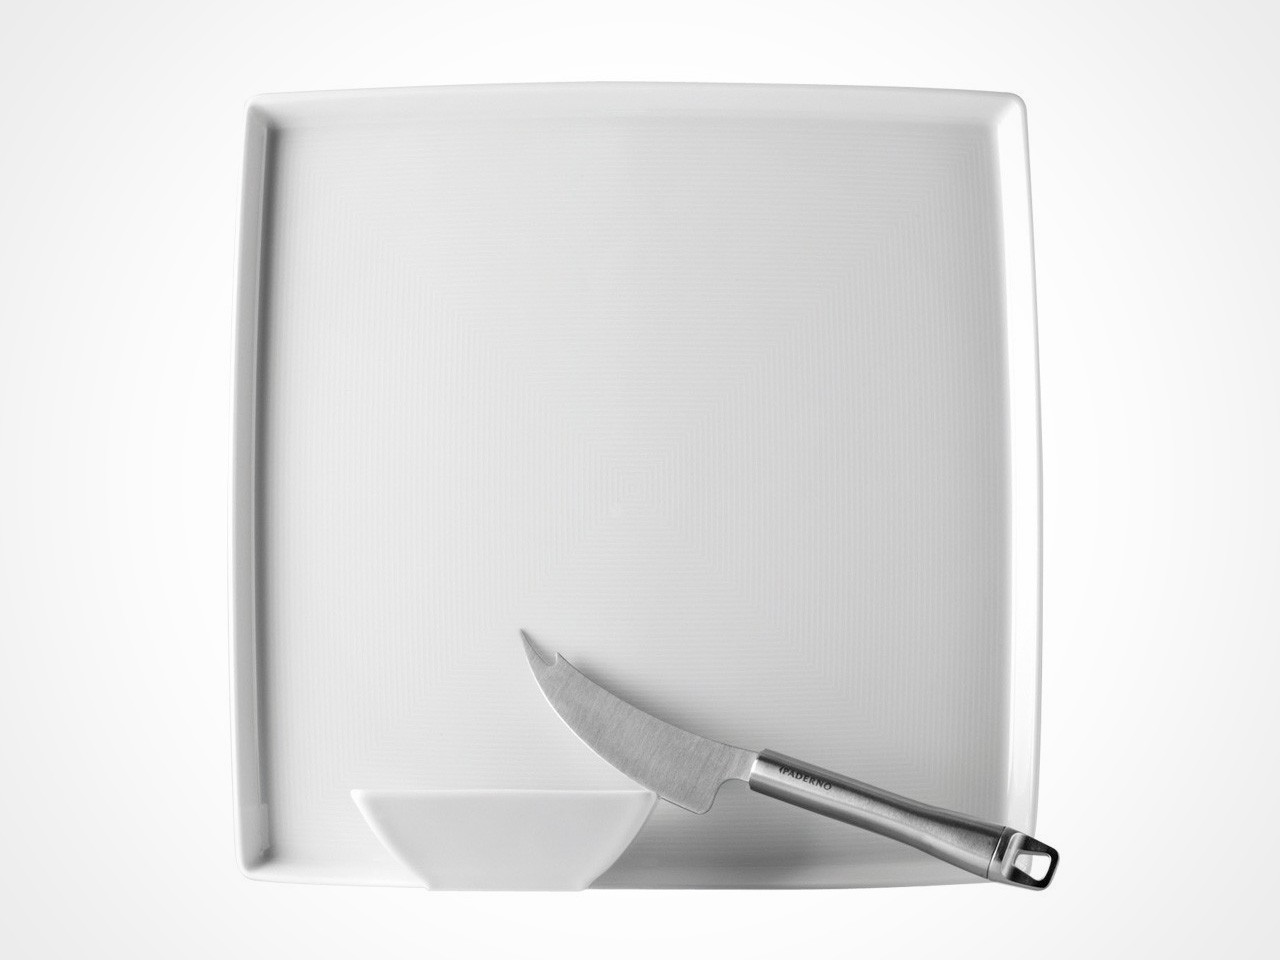 Thomas by Rosenthal cheese set containing square tray, cheese knife and small square bowl on off white background.